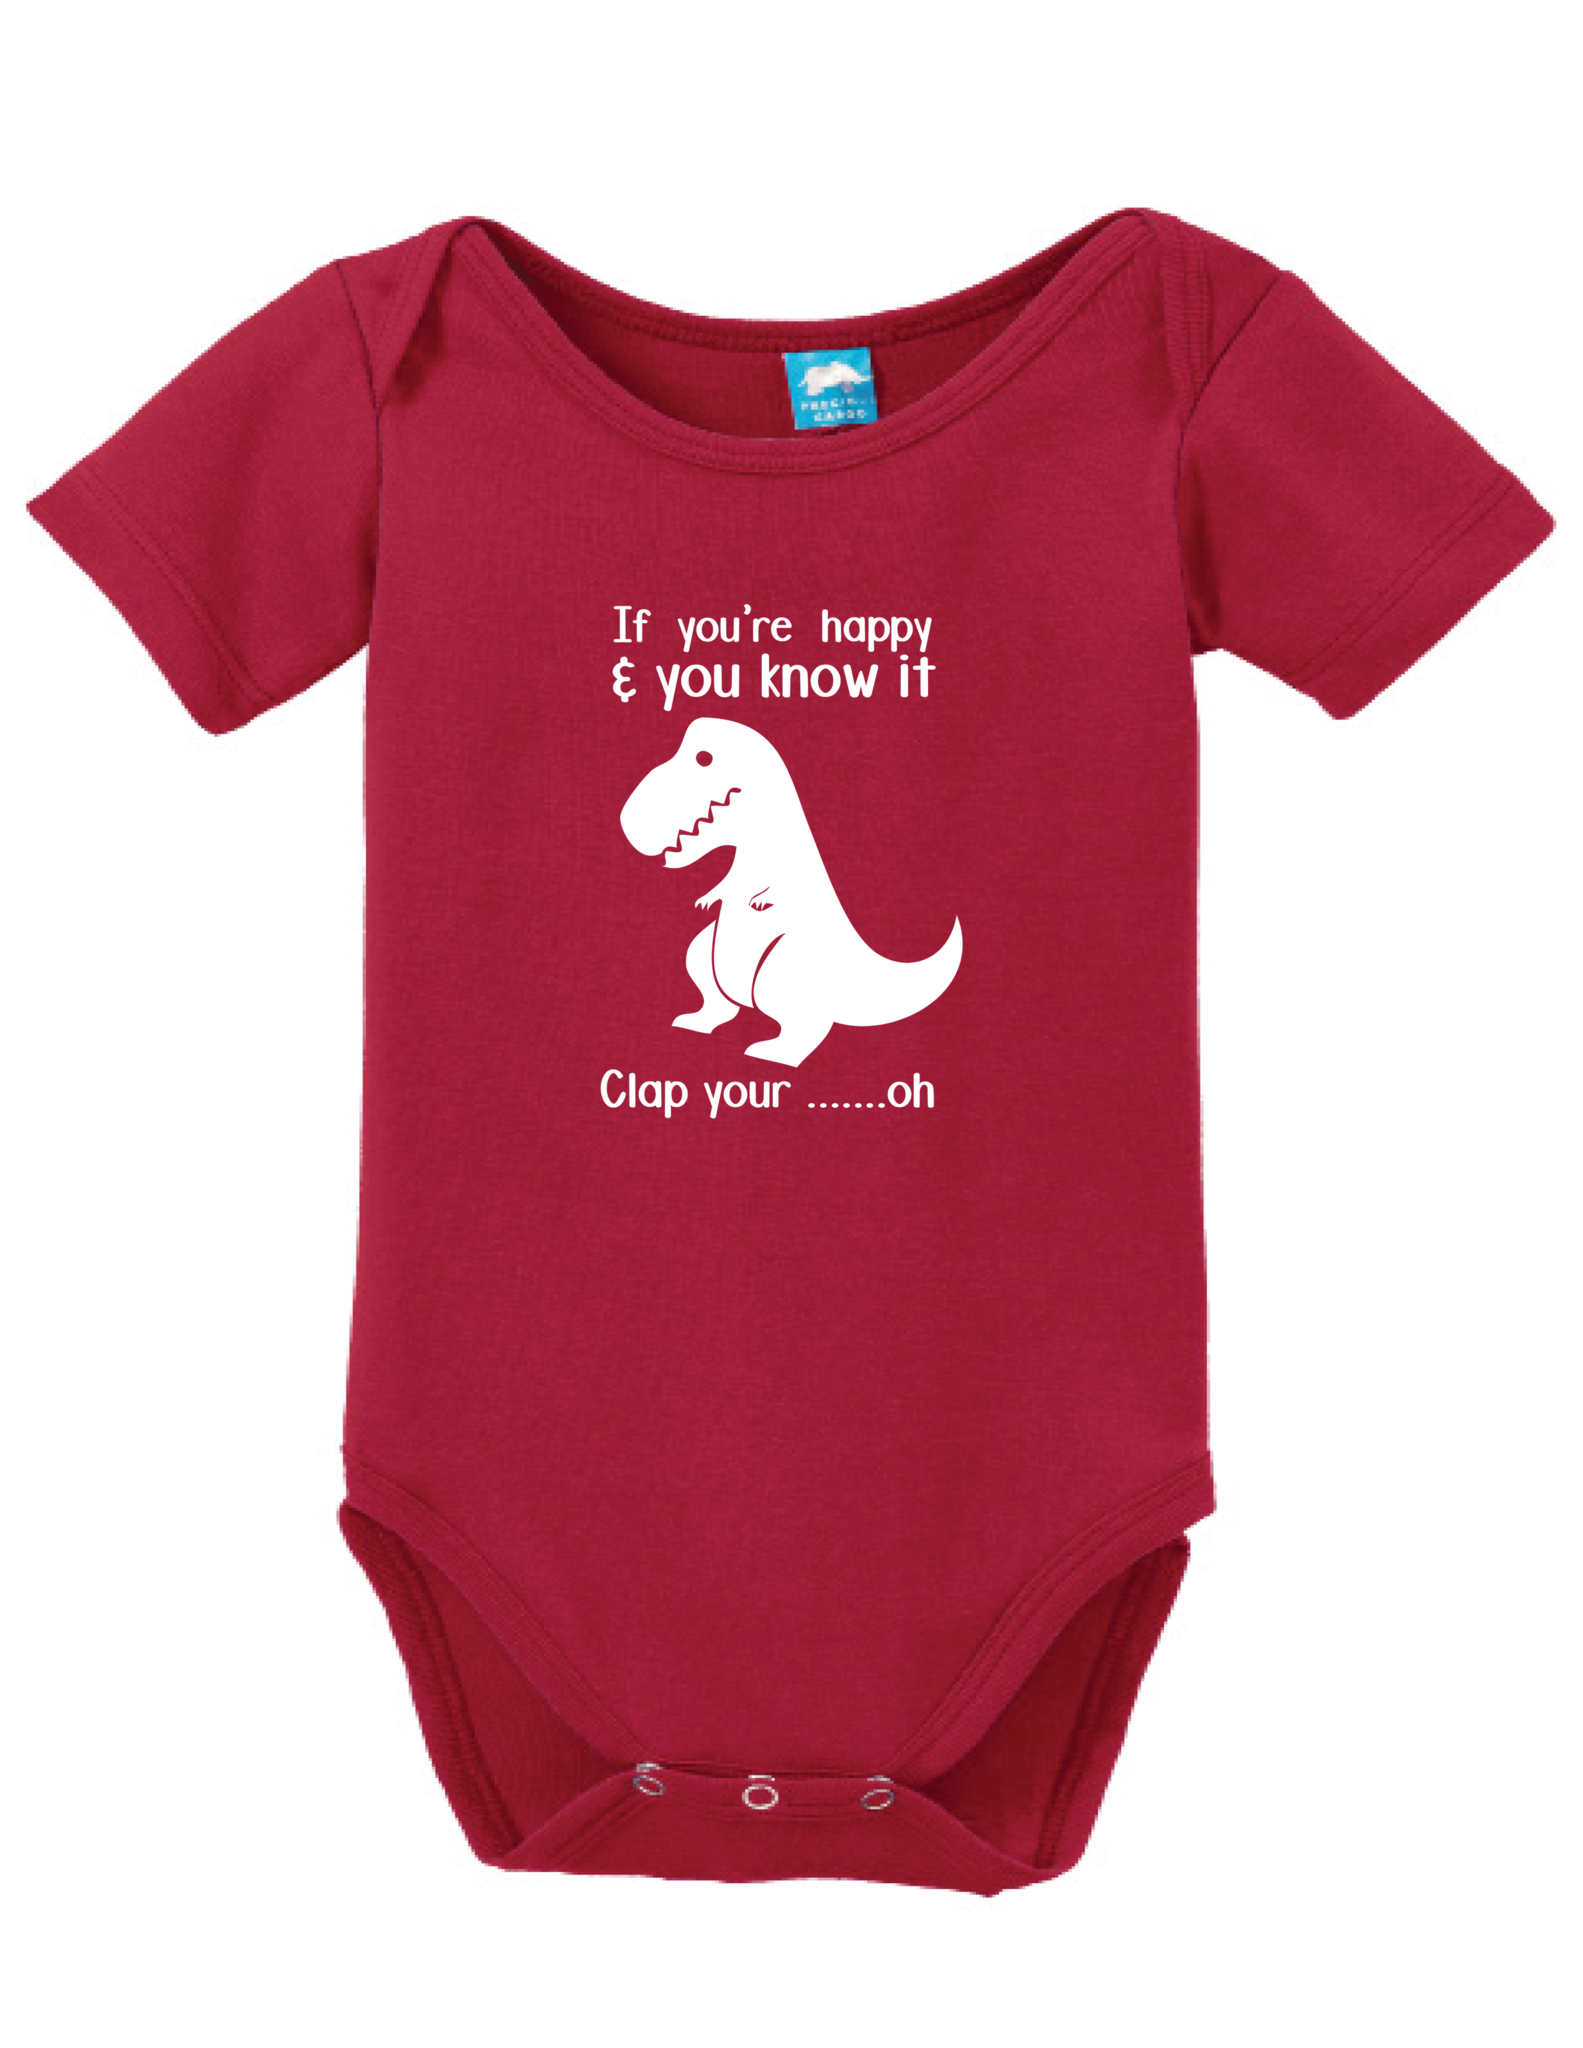 T Rex Dinosaurs If Youre Happy /& You Know It Cute Baby Onesie Bodysuit